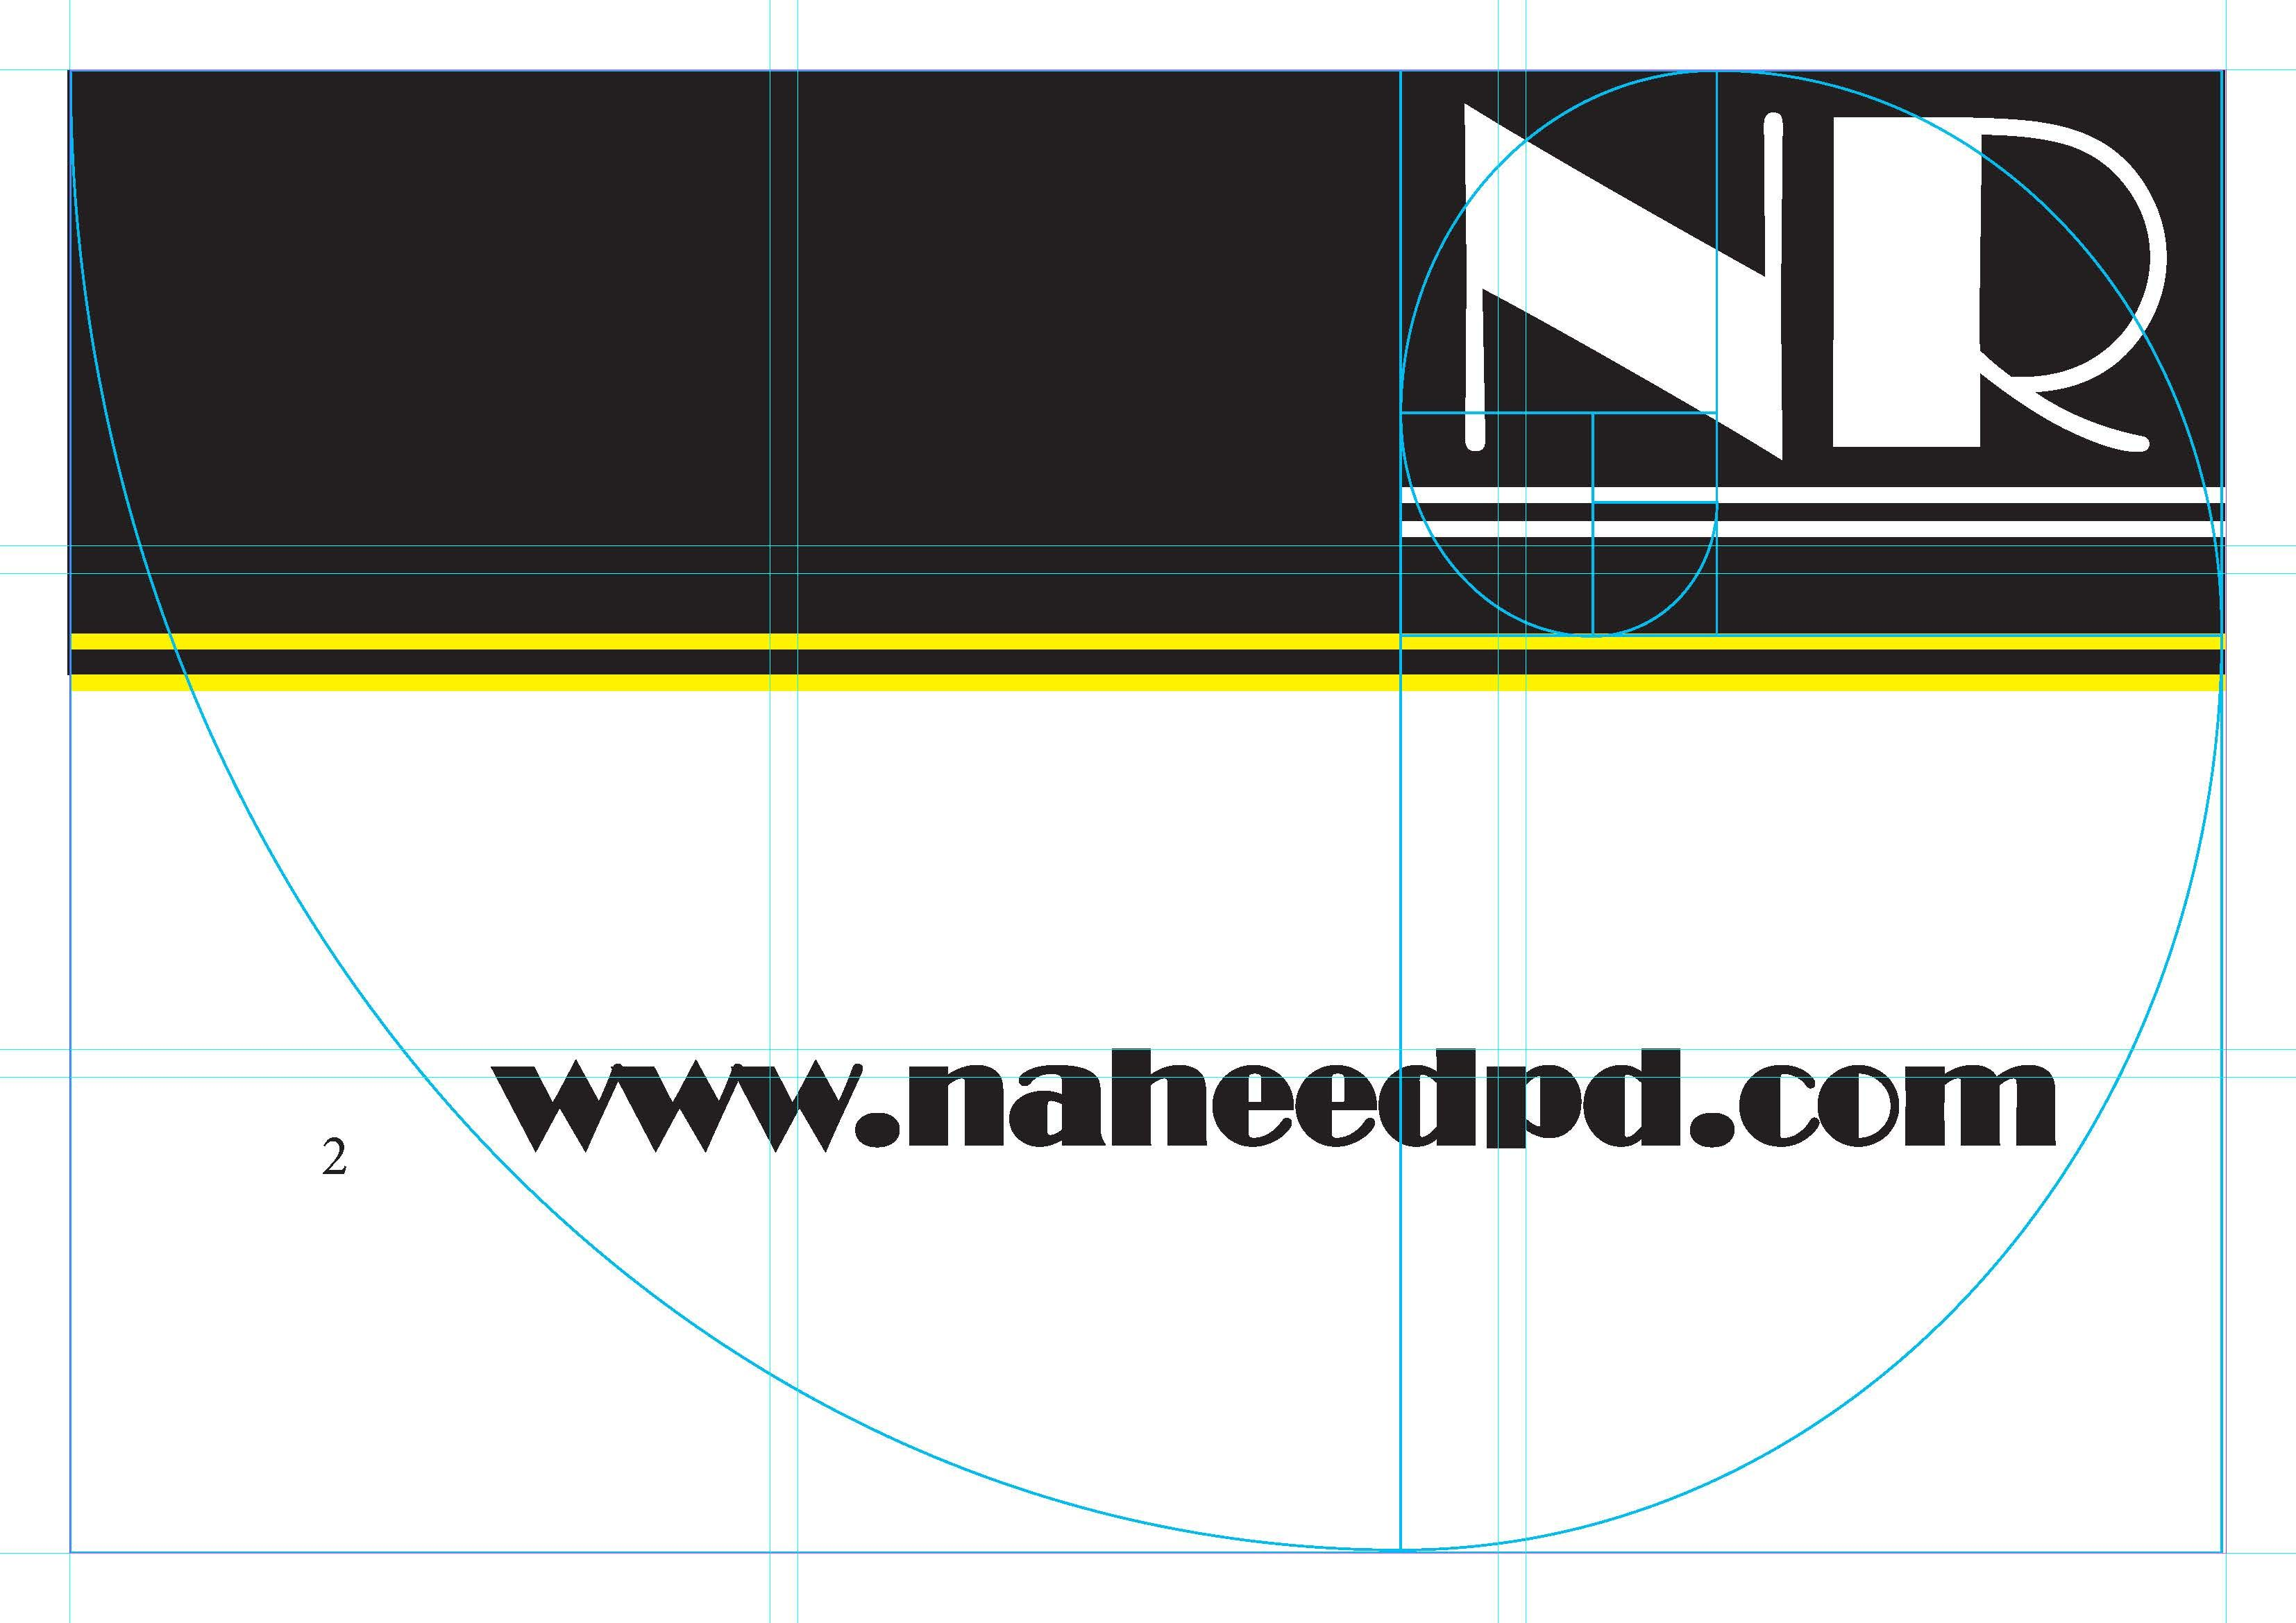 golden ratio business card with guides pde1350 design tools